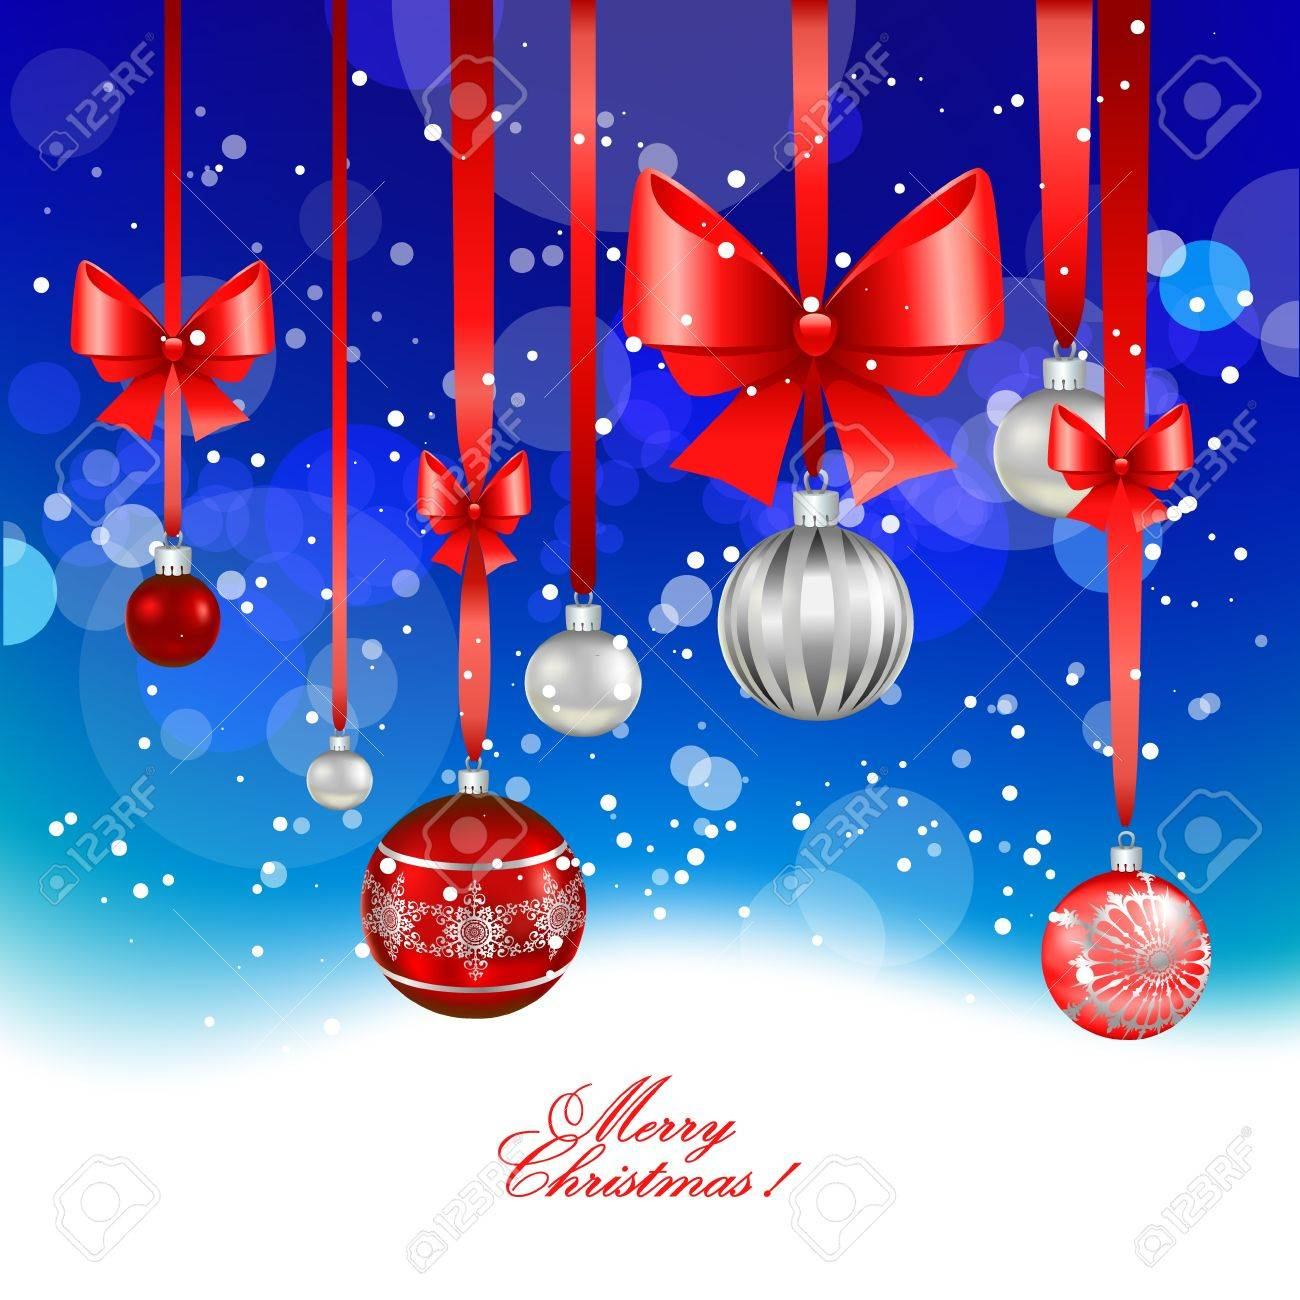 Christmas festive  background Stock Vector - 20544764